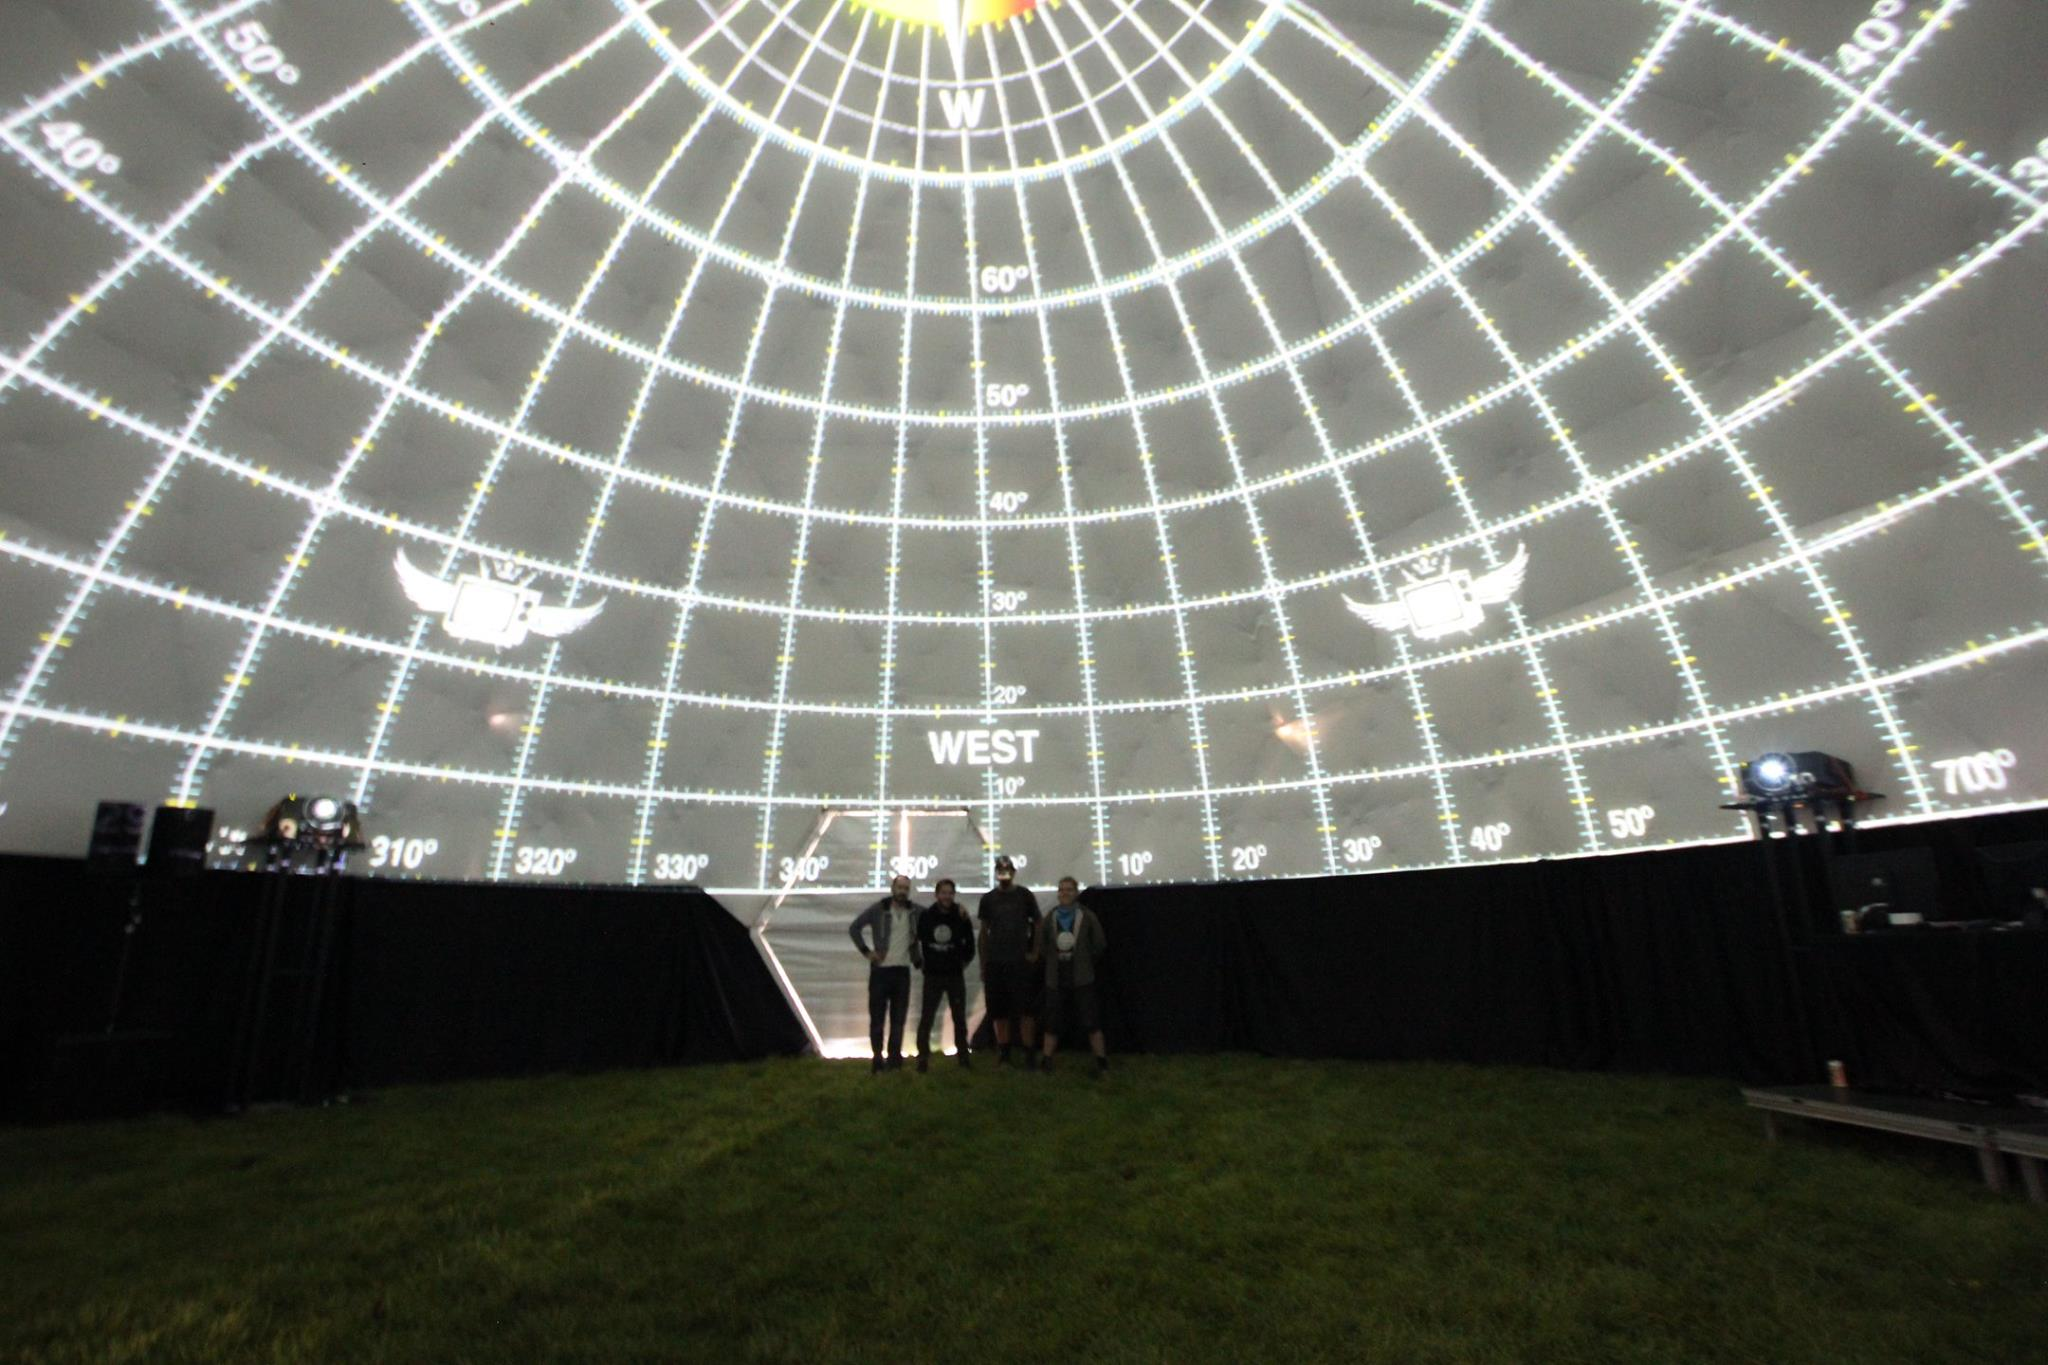 Dome mapping